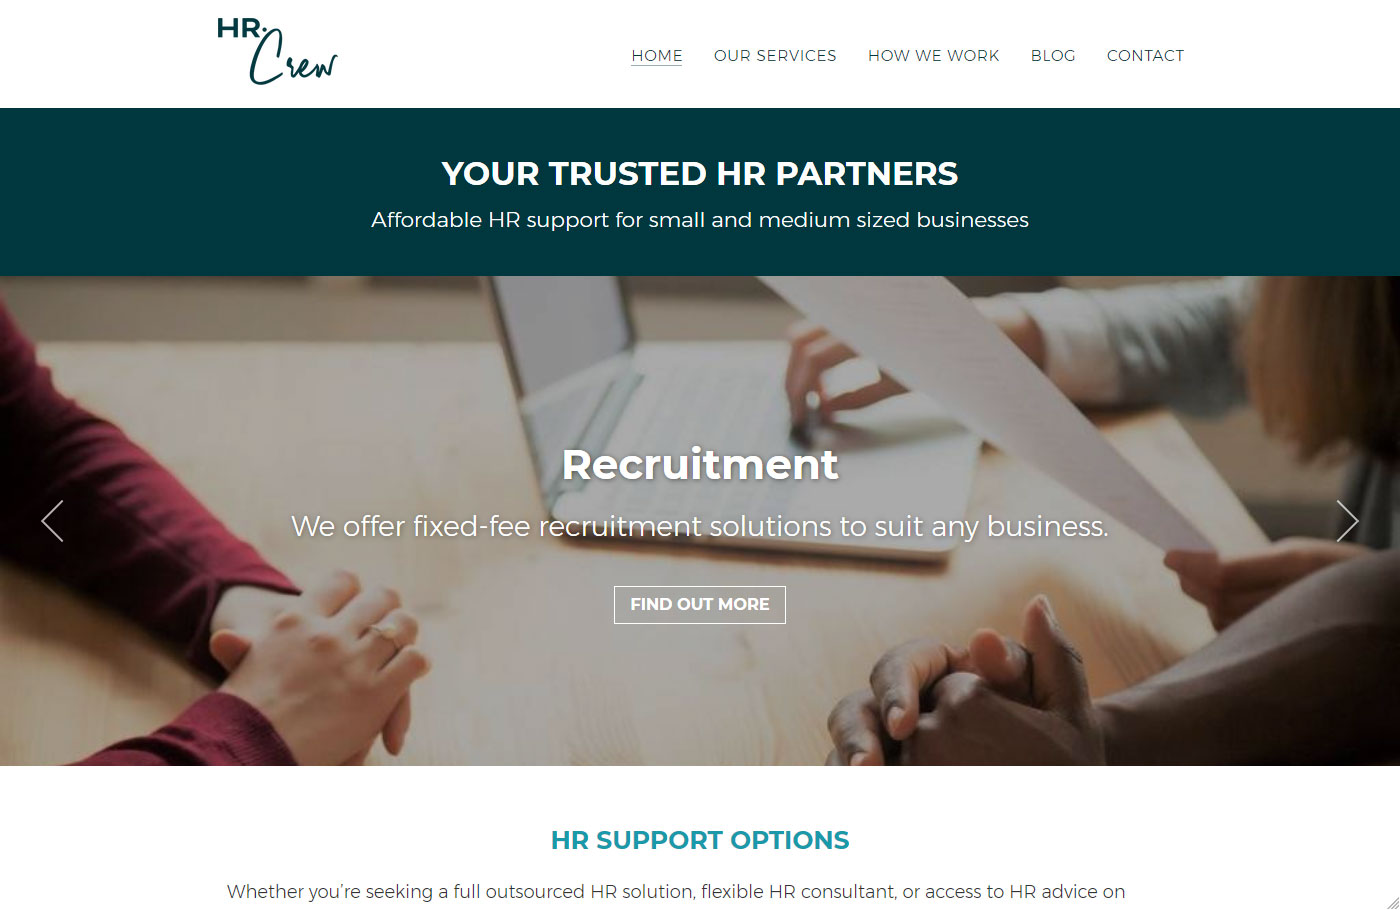 HR Crew - made with free Nimbo website builder